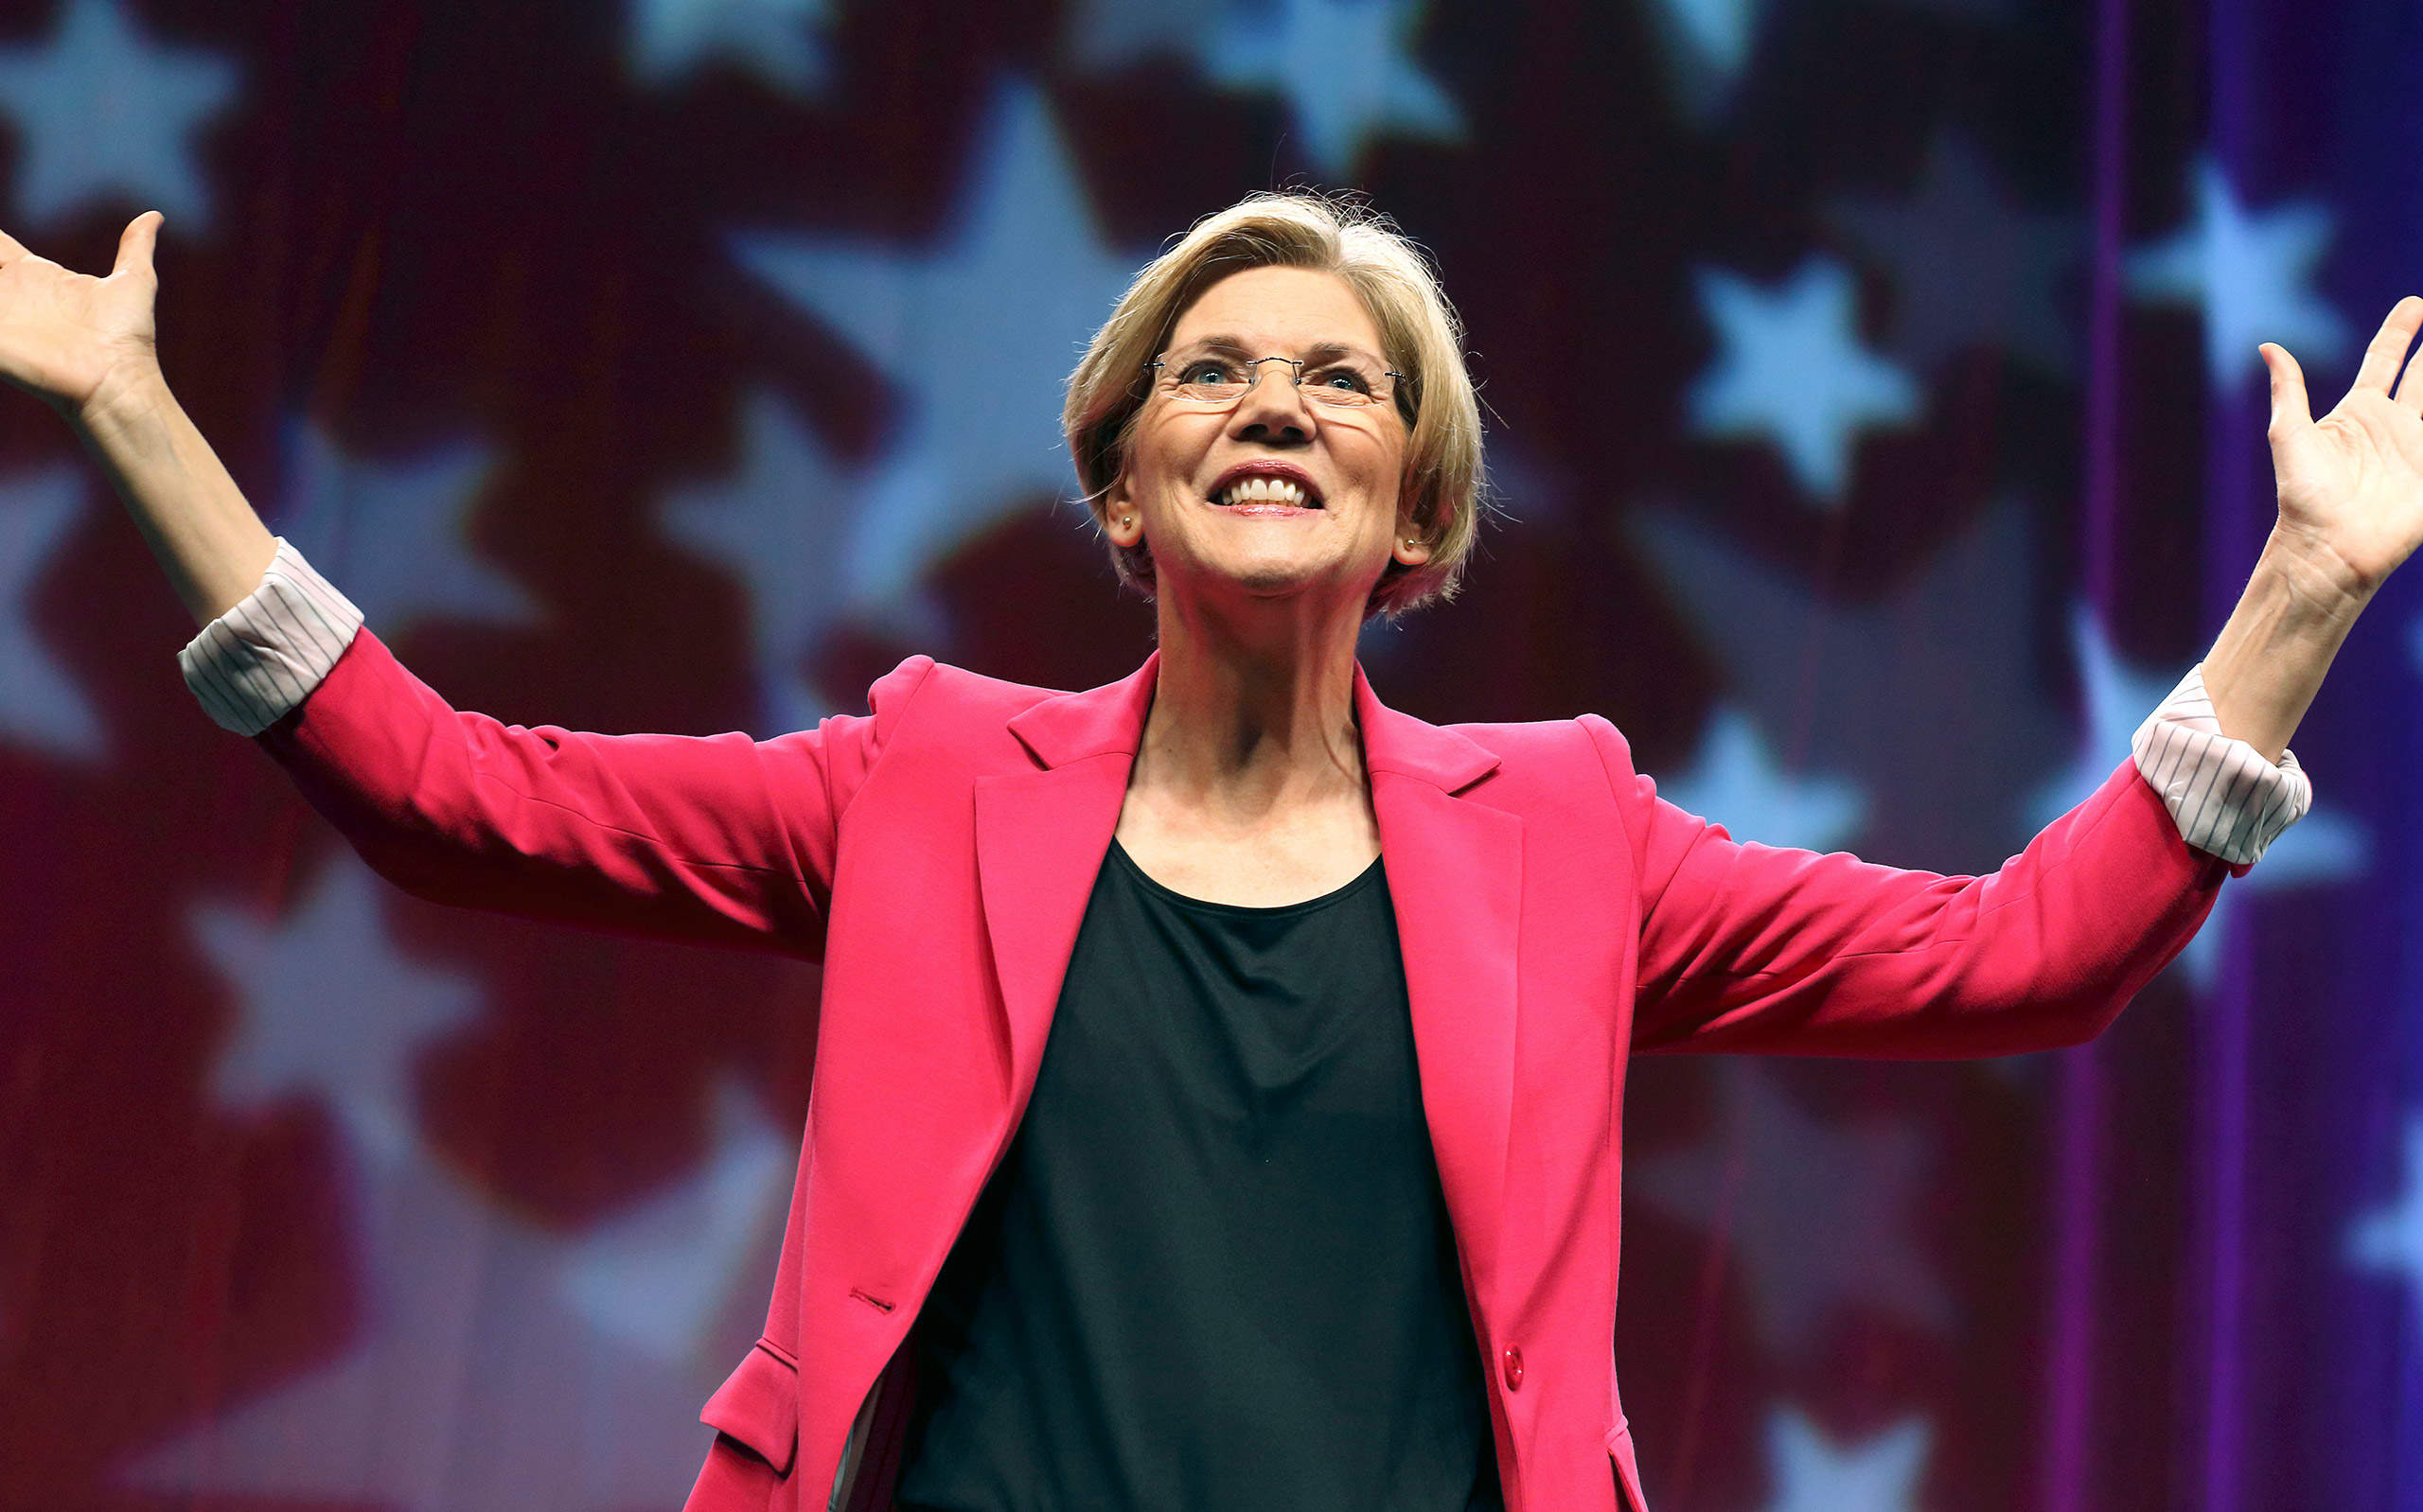 Elizabeth Warren looks to the audience after addressing the Democratic State Convention before the delegate vote in Springfield, Mass. on Saturday, June 2, 2012.